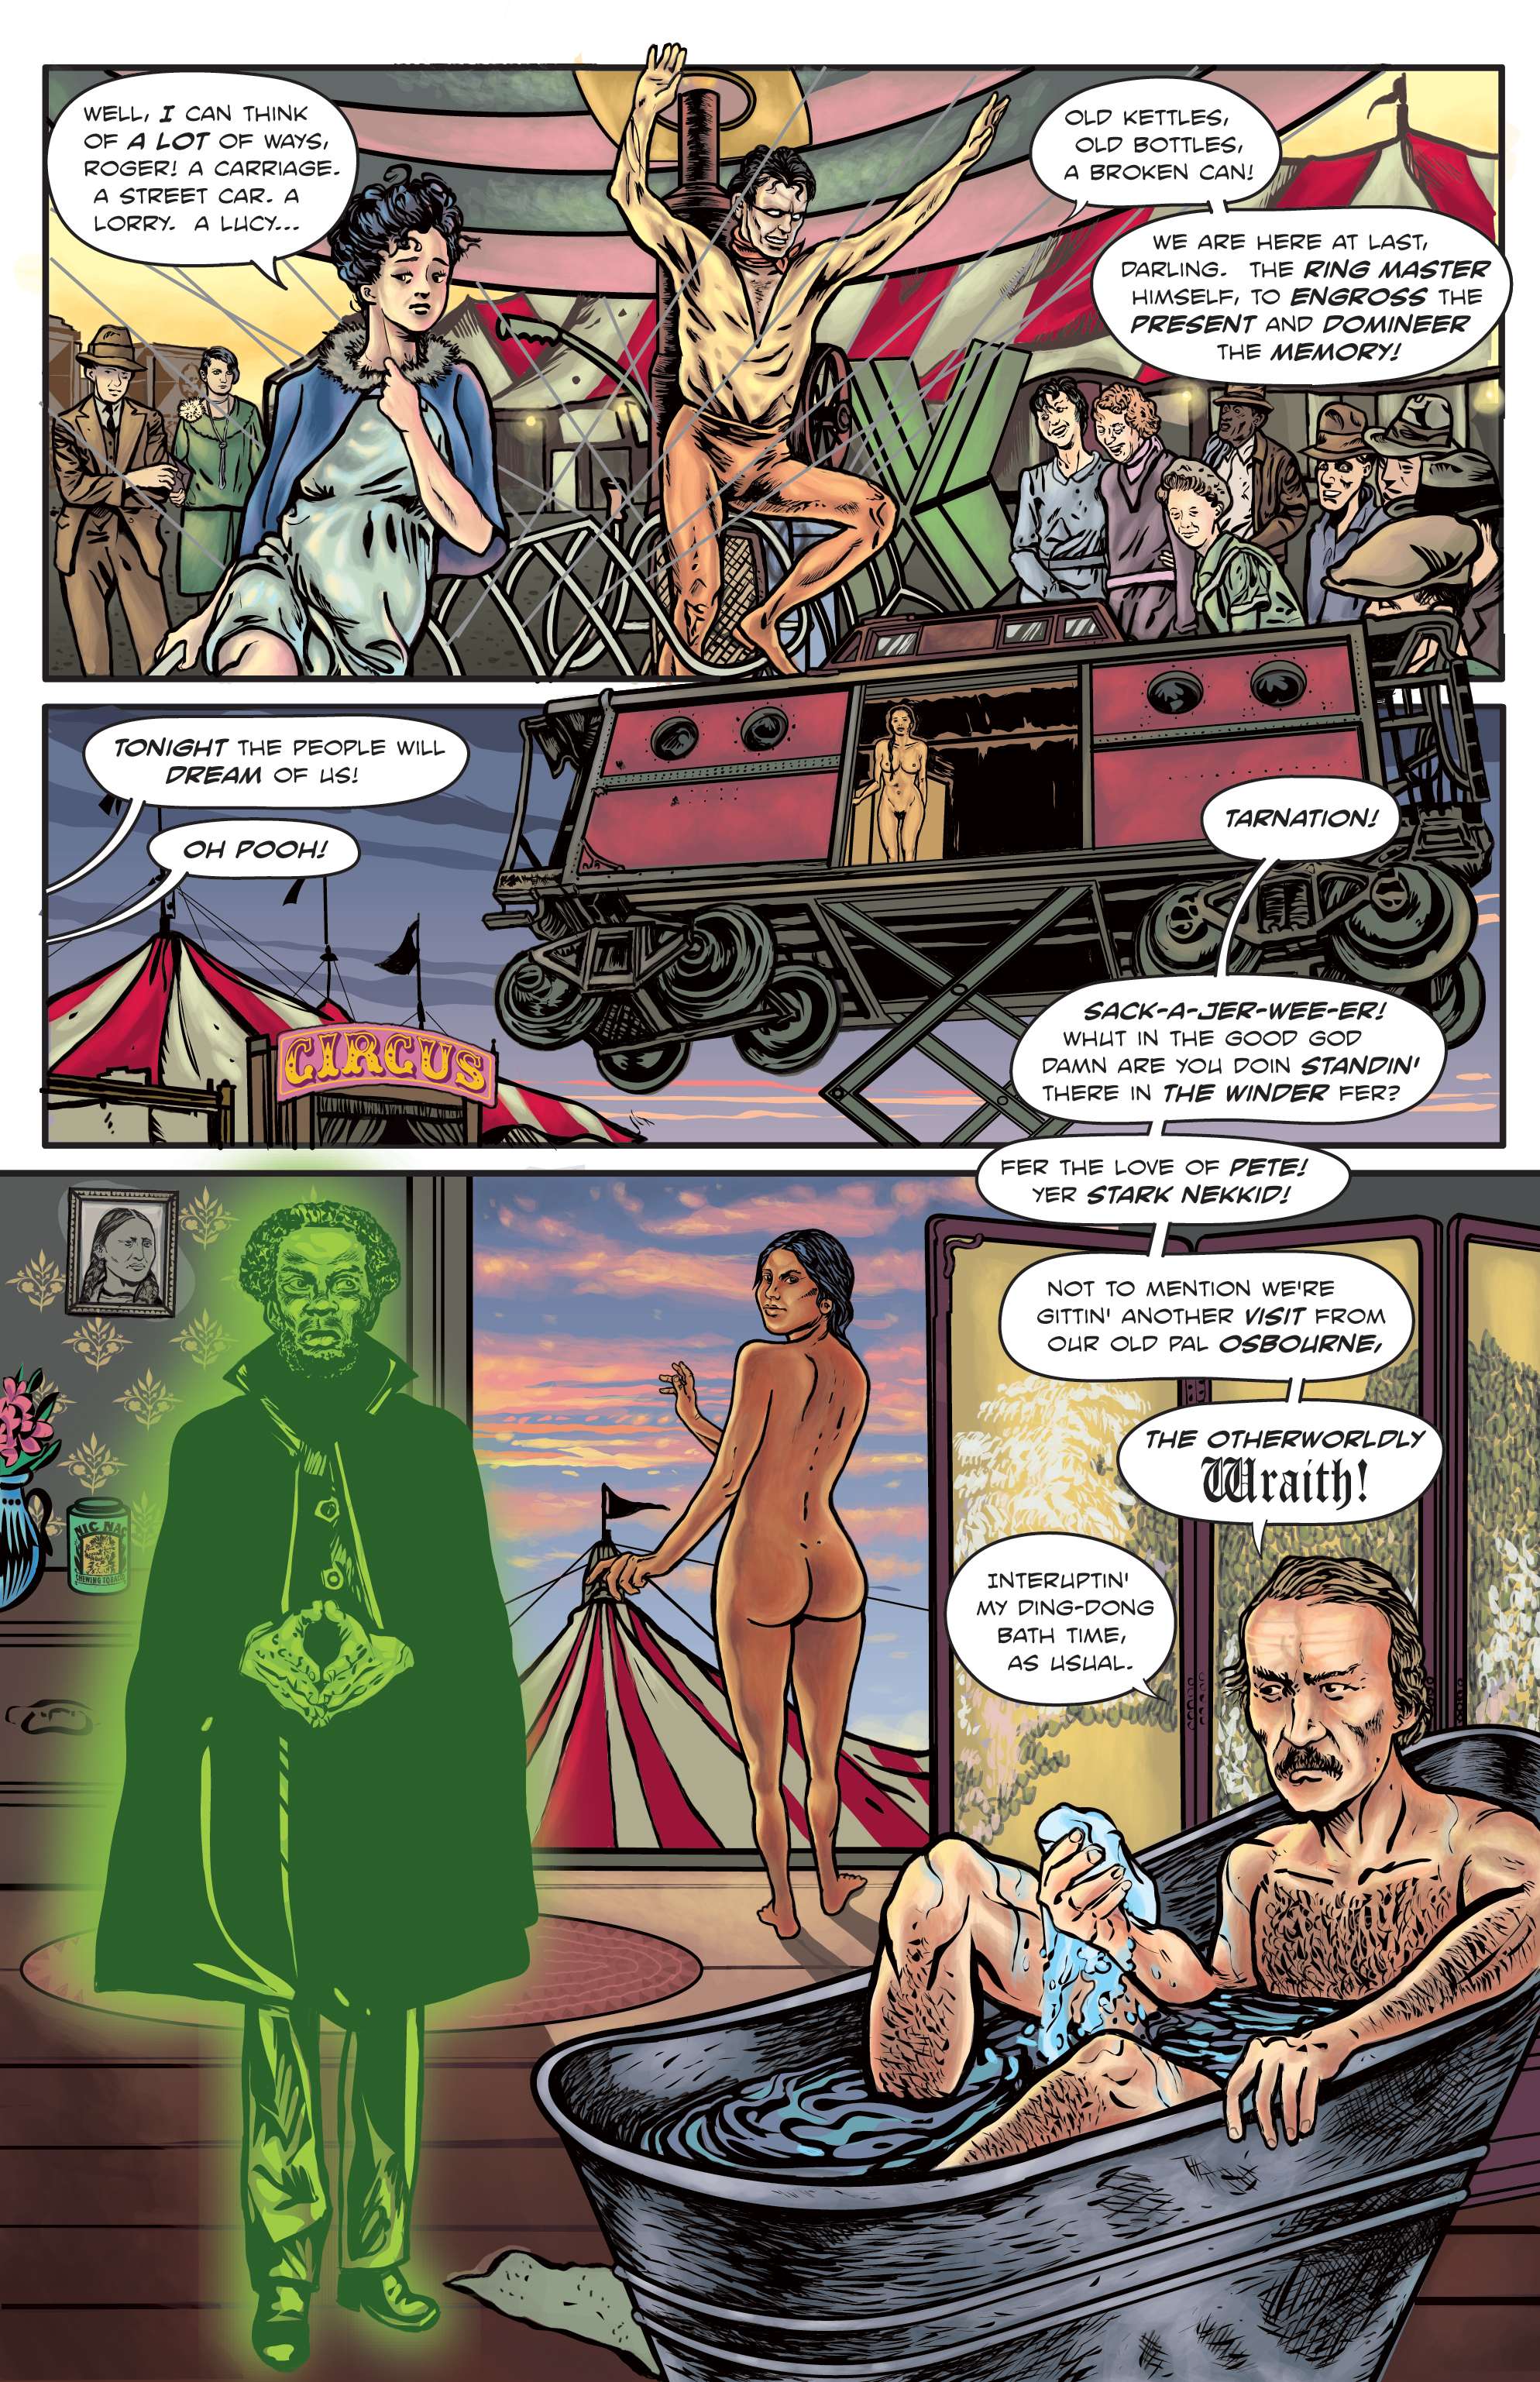 The Enchanted Dagger #5 – Page 4